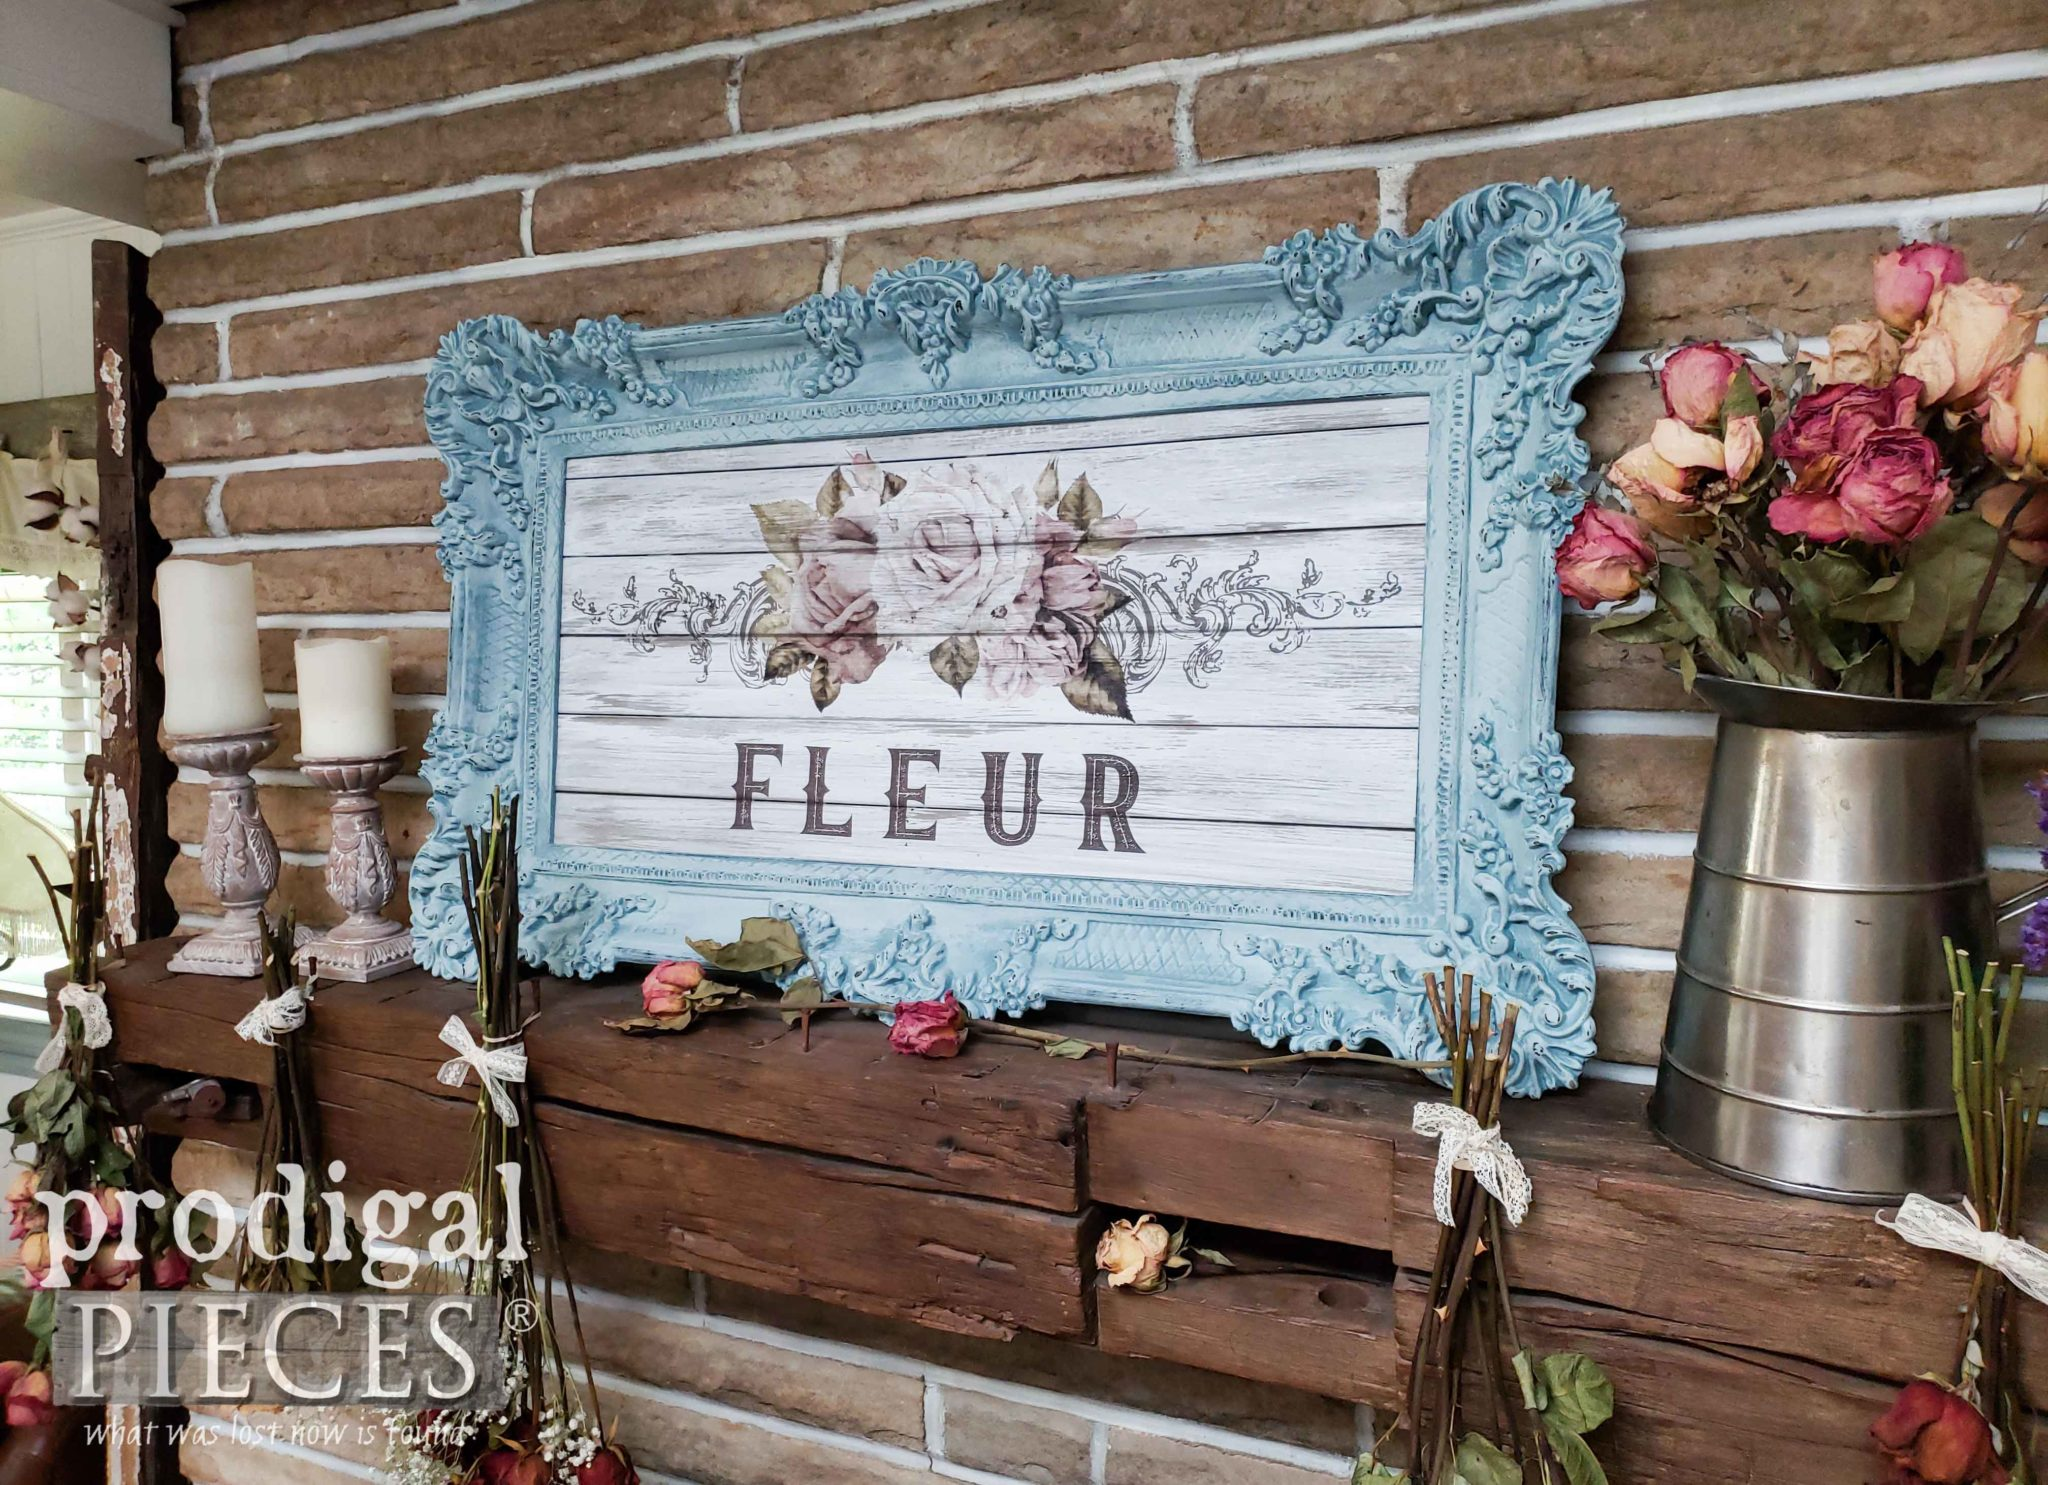 French Farmhouse Shabby Chic Wall Art by Larissa of Prodigal Pieces with video tutorial | Head to prodigalpieces.com #prodigalpieces #french #farmhouse #shabbychic #cottage #home #homedecor